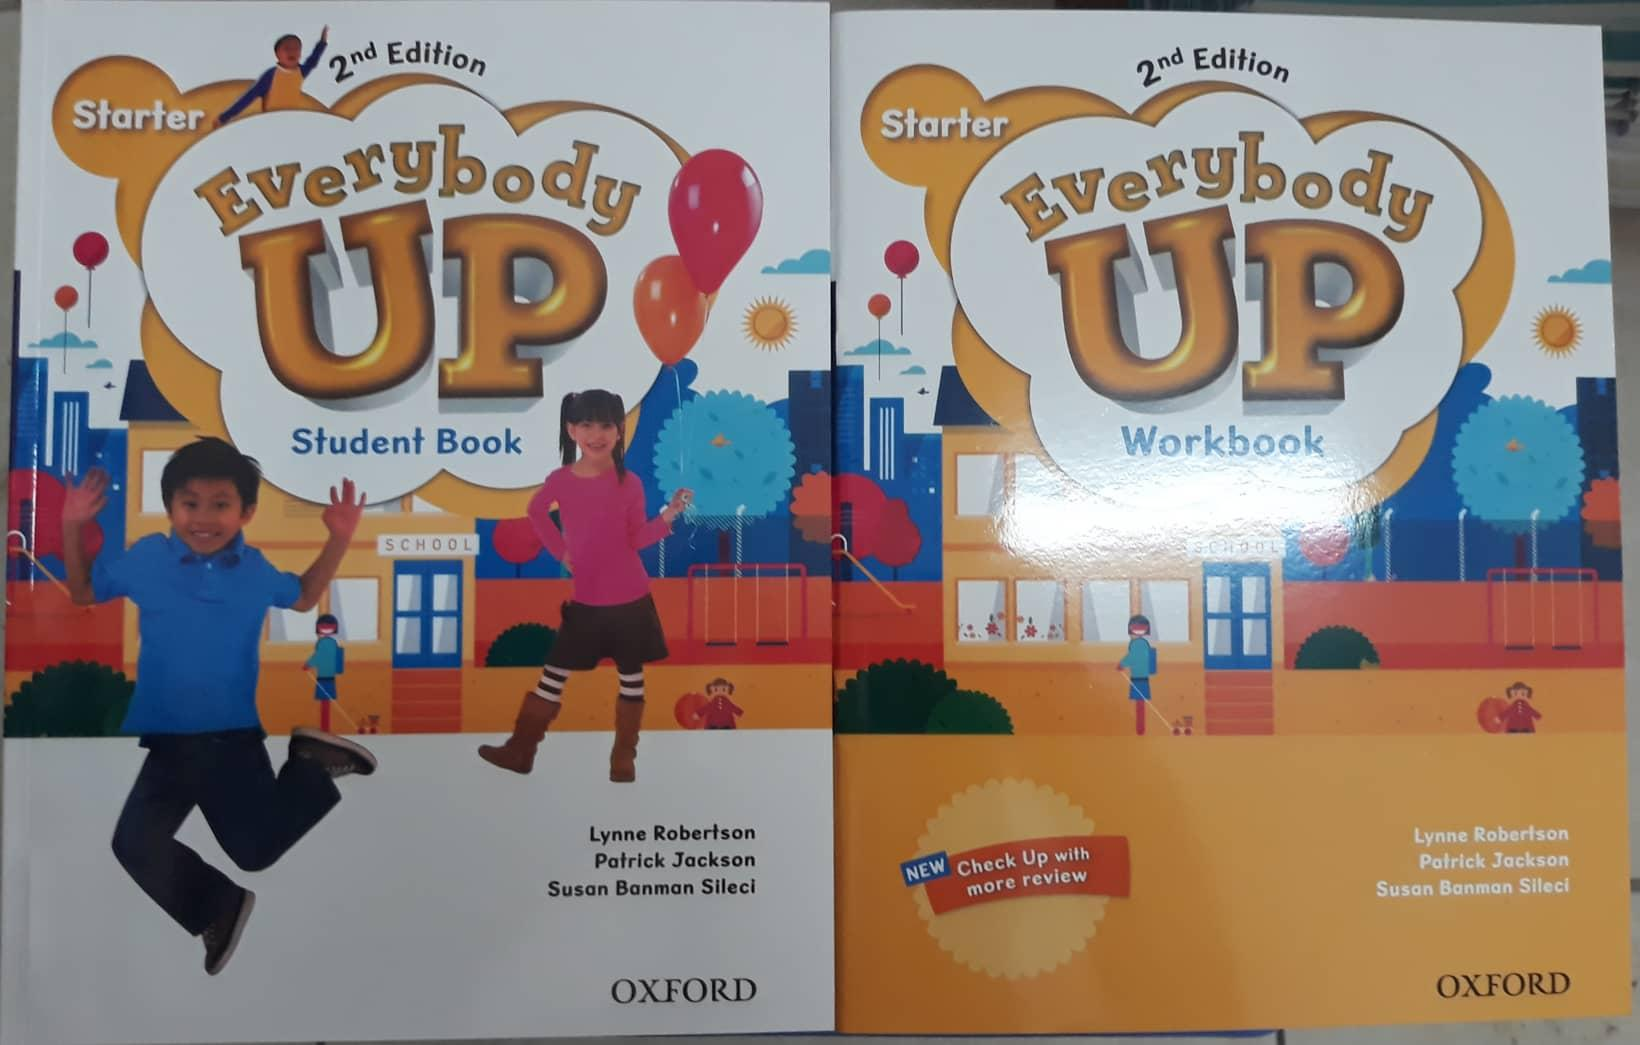 Mua Trọn bộ sách Everybody Up Starter 2nd edition (2 cuốn Student book + Workbook)